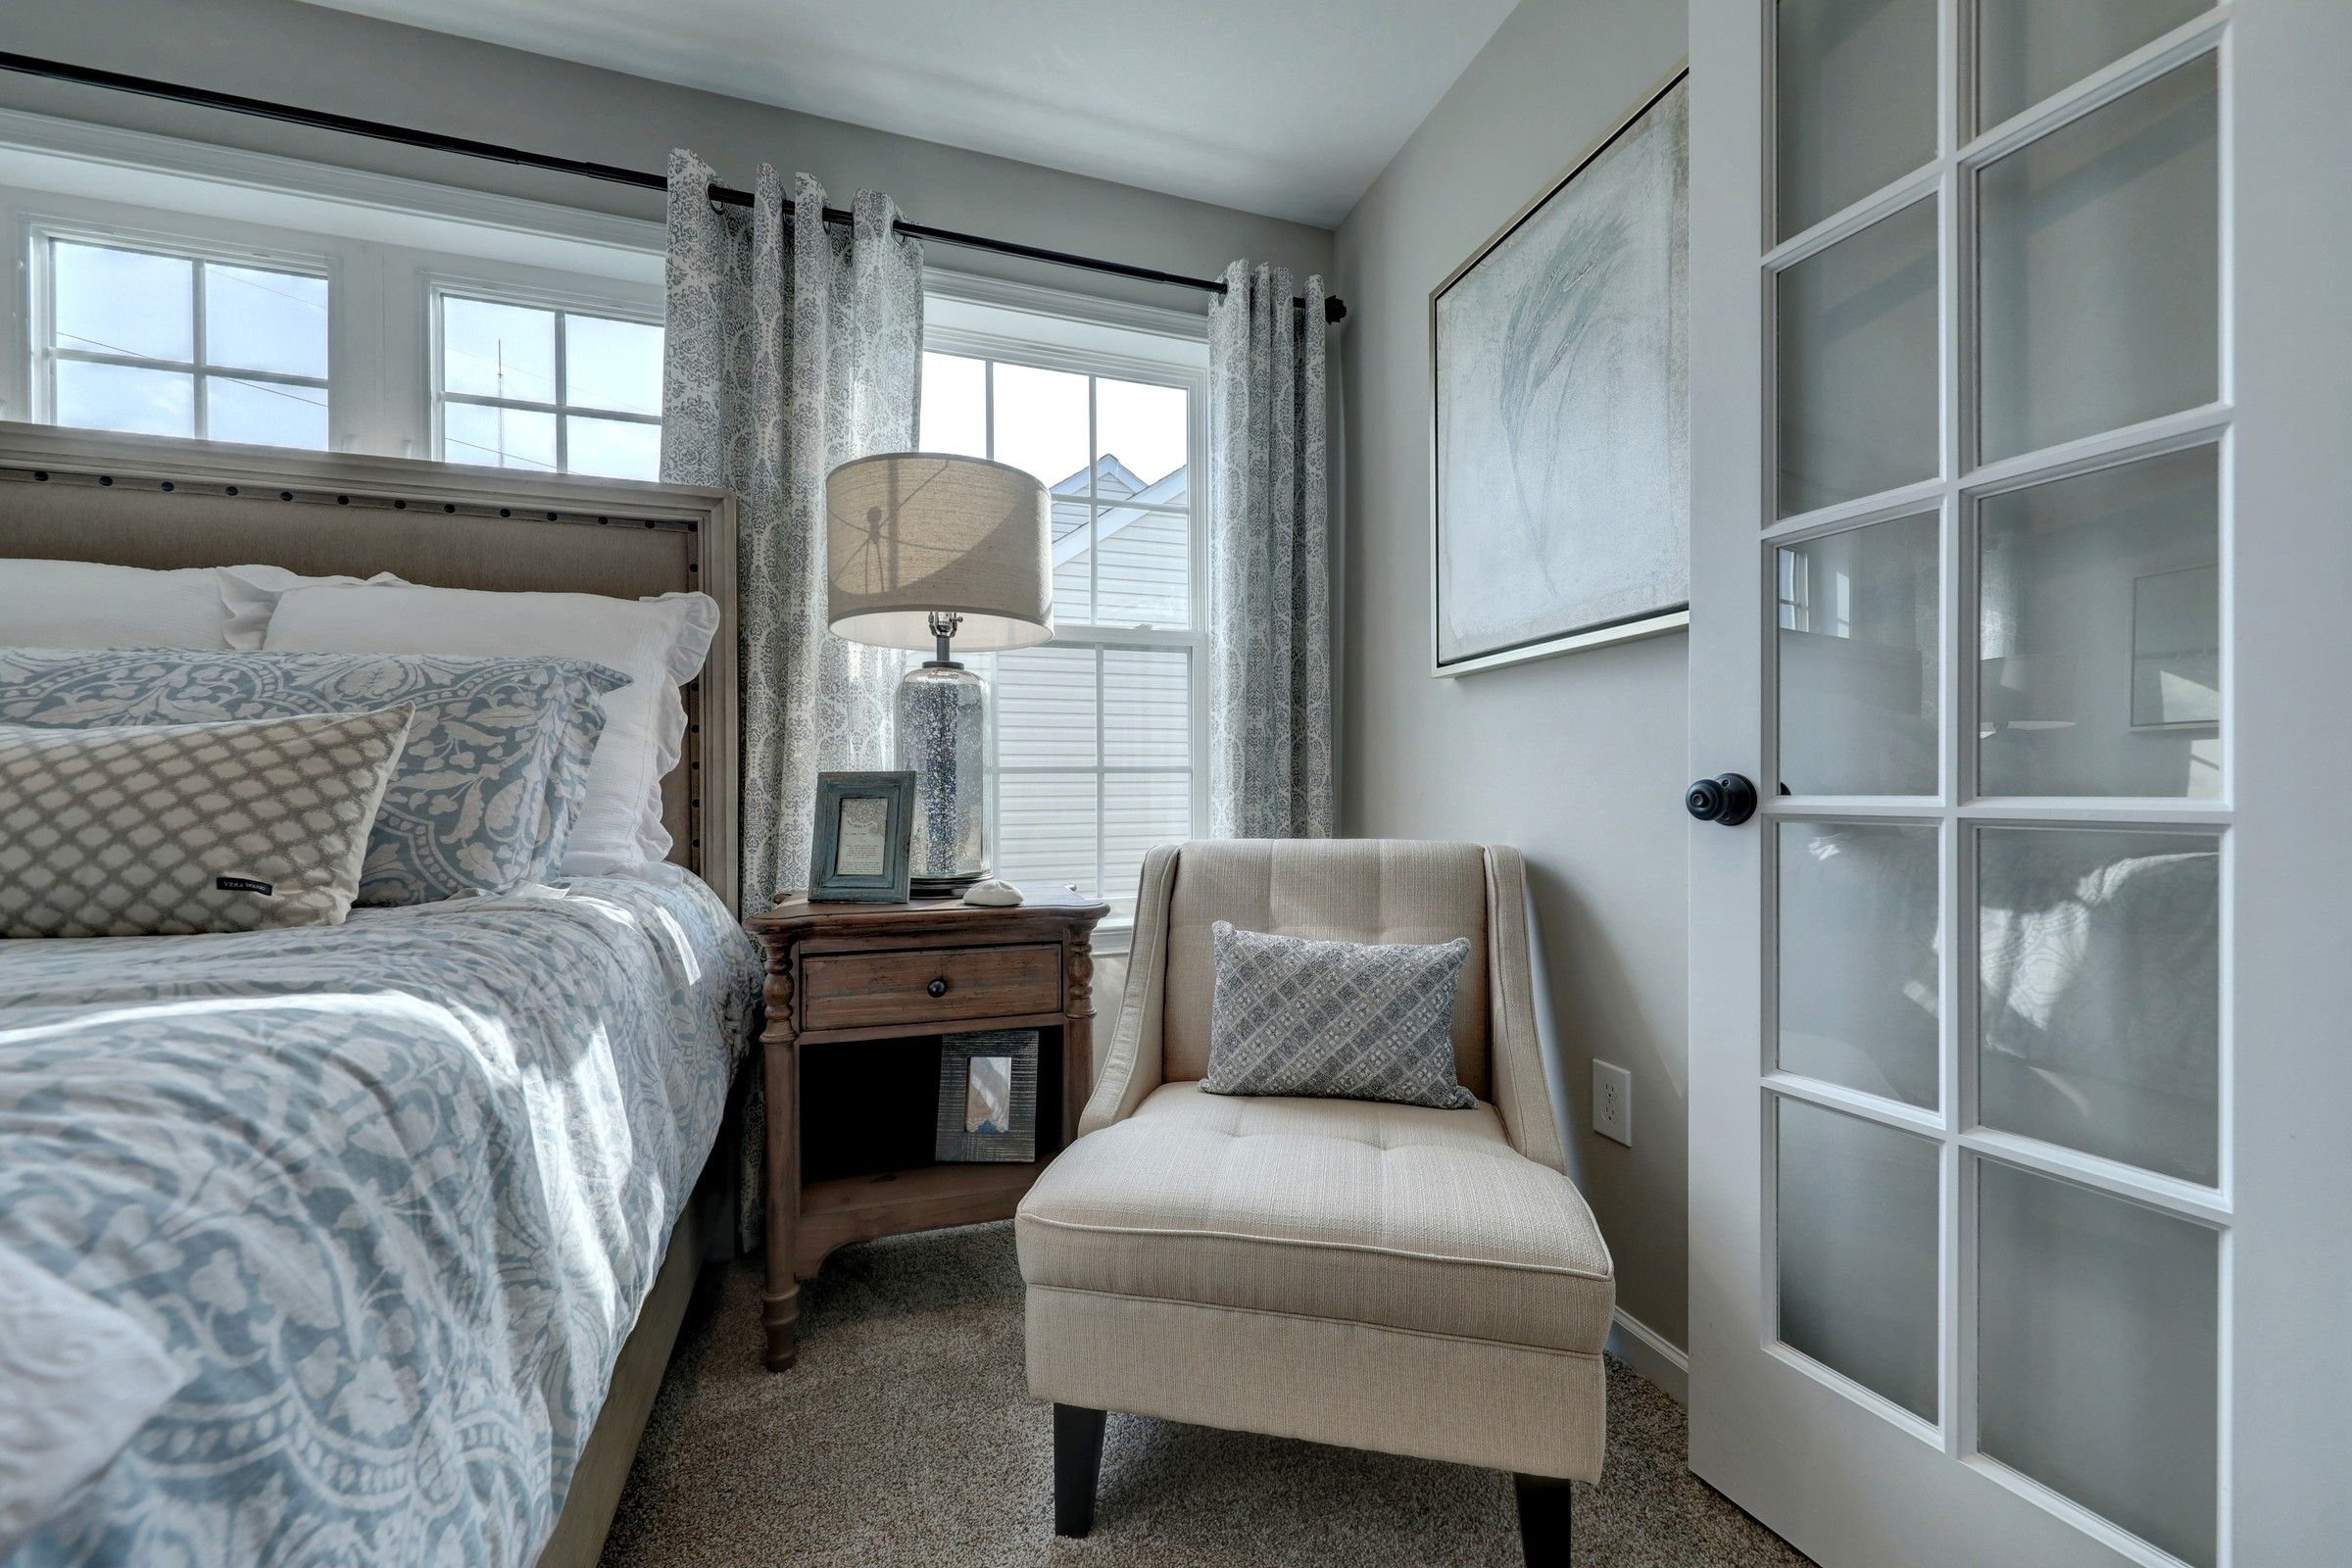 Bedroom featured in the Ethan Bordeaux By Keystone Custom Homes in Lancaster, PA